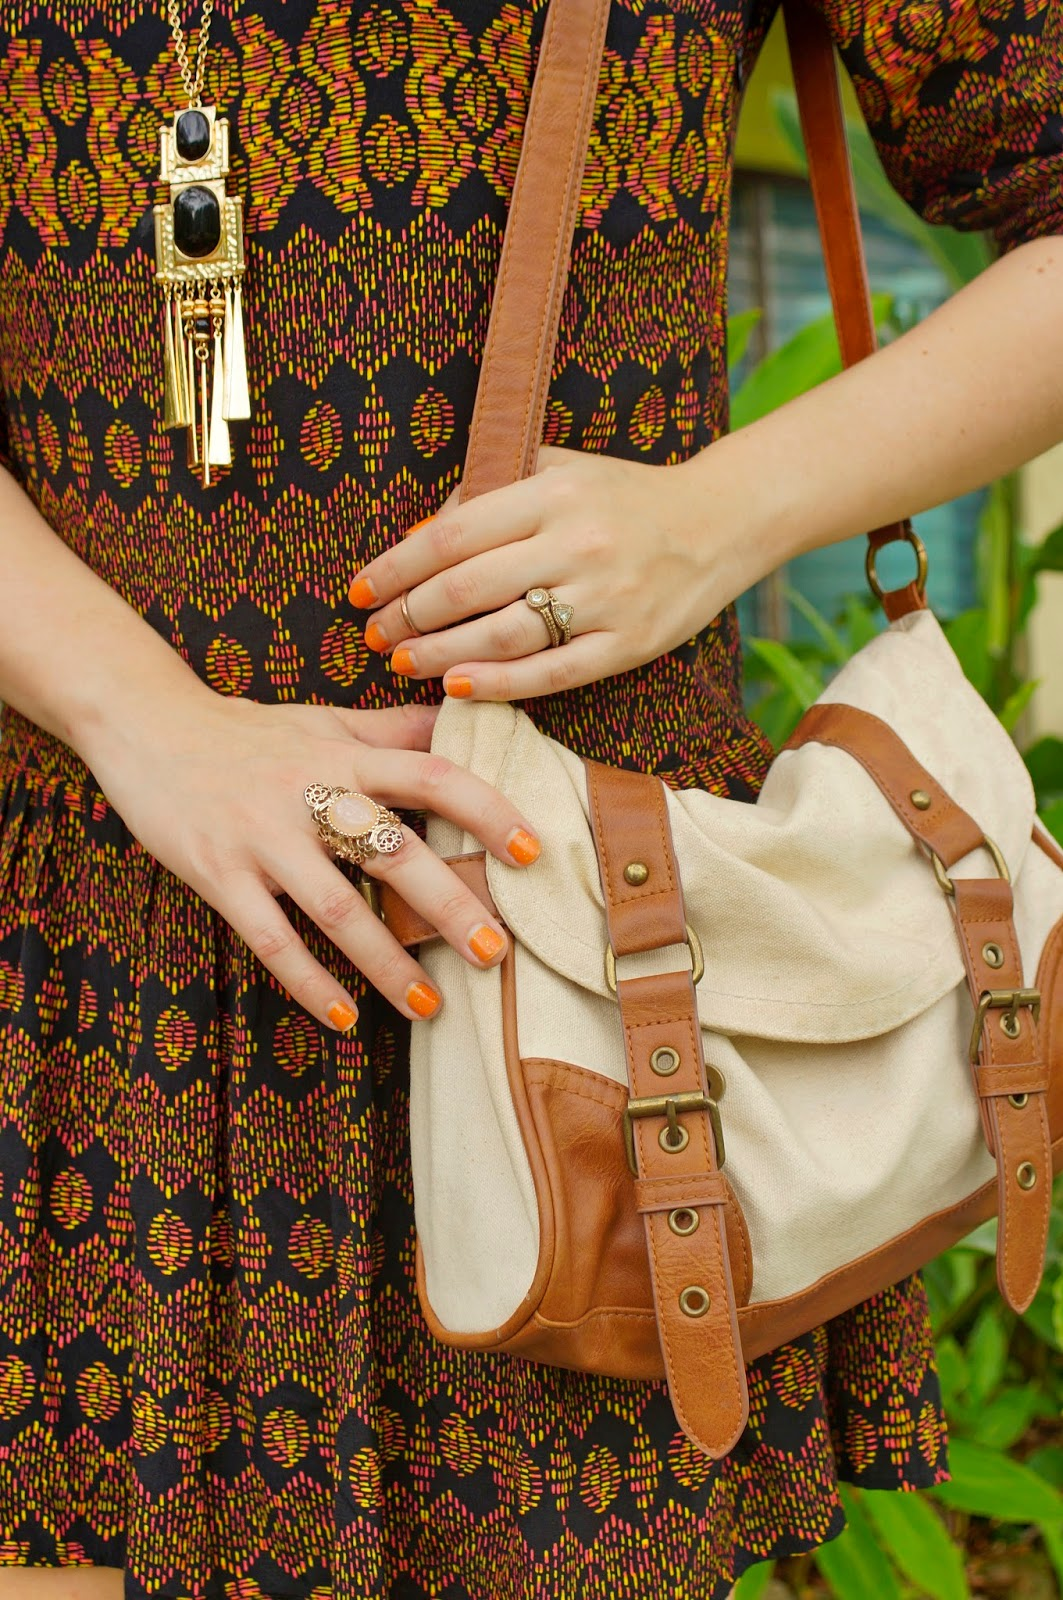 Loving these boho chic accessories!